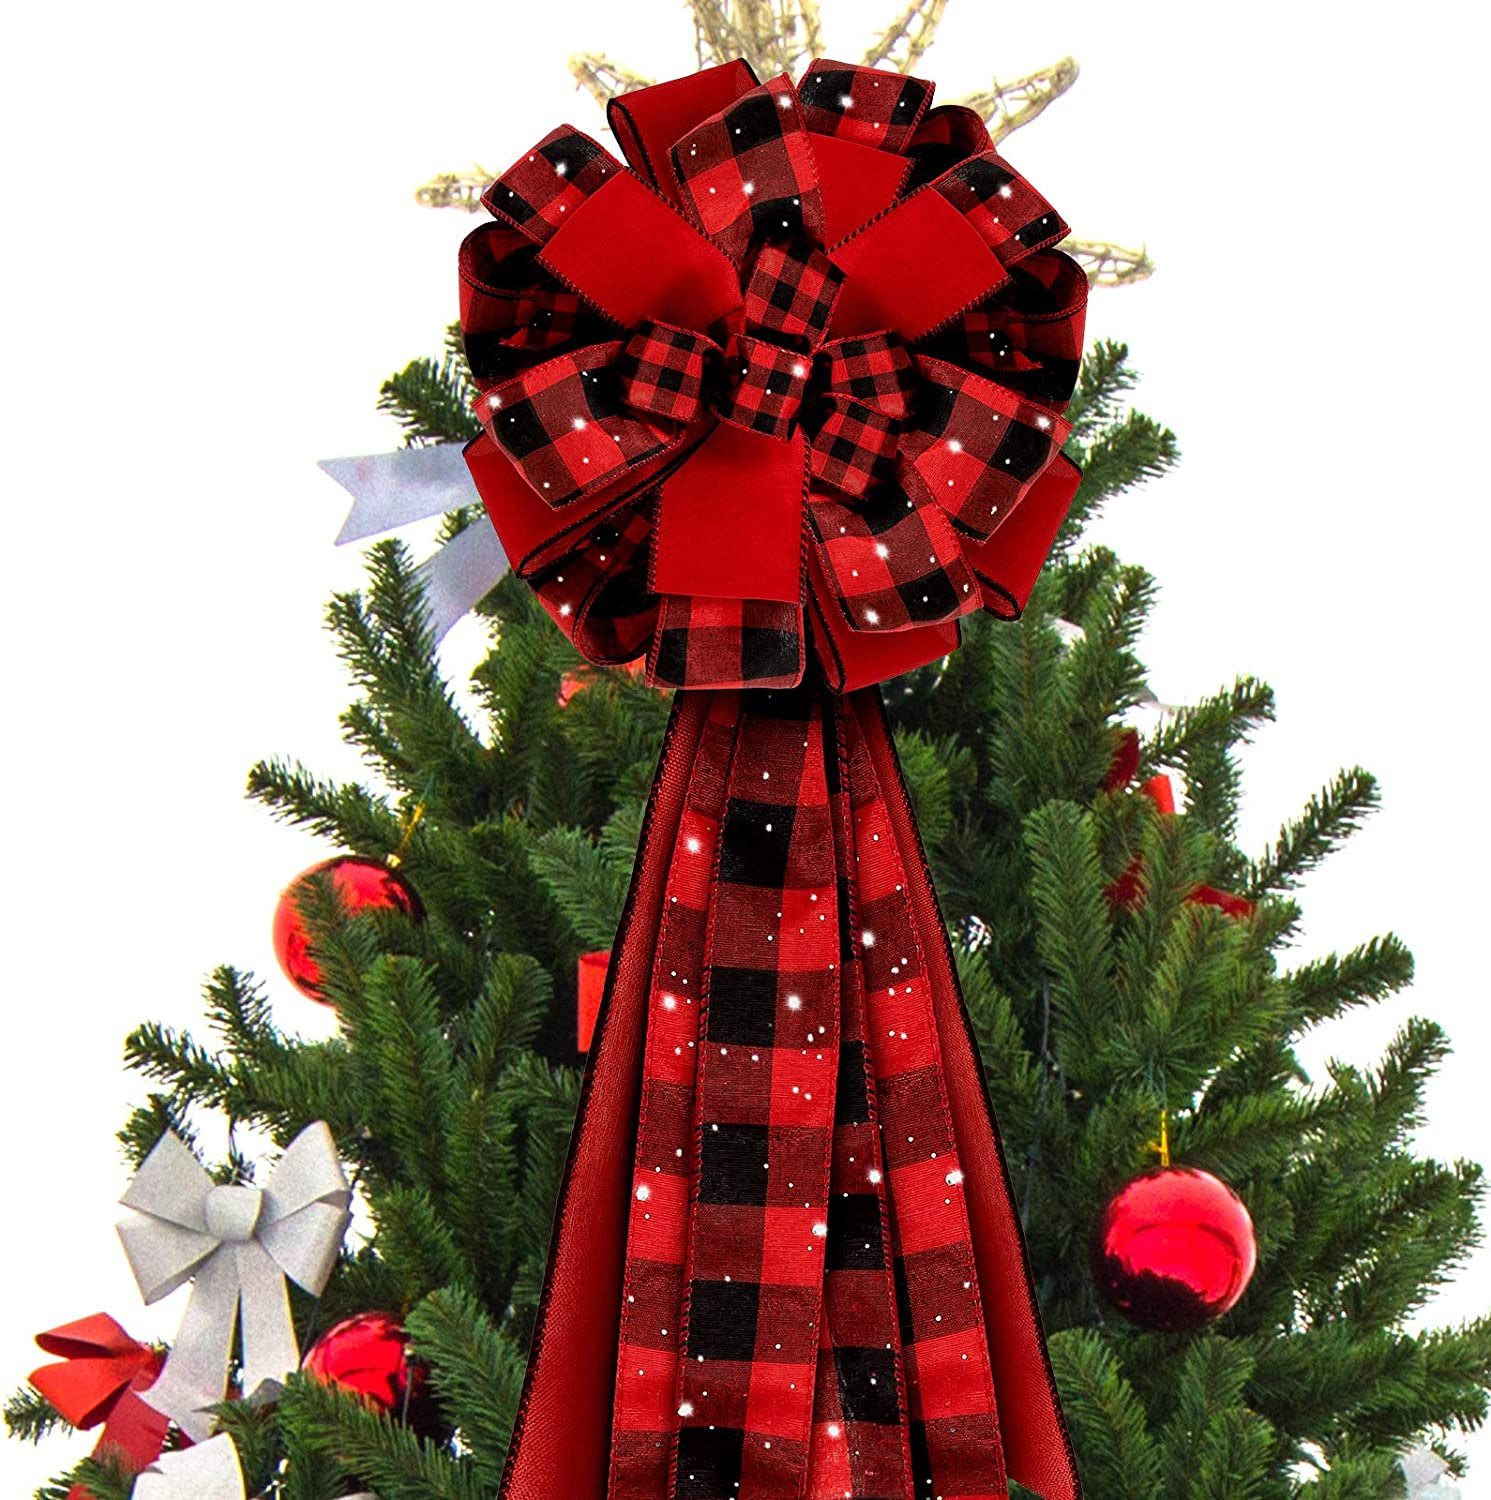 Large Wreath Bow Christmas Party Buffalo Plaid Bows Whaline 3pcs Christmas Bow Decorations 13 x 22in Xmas Decorative Bows Ornaments for Home Decor White Black Bows